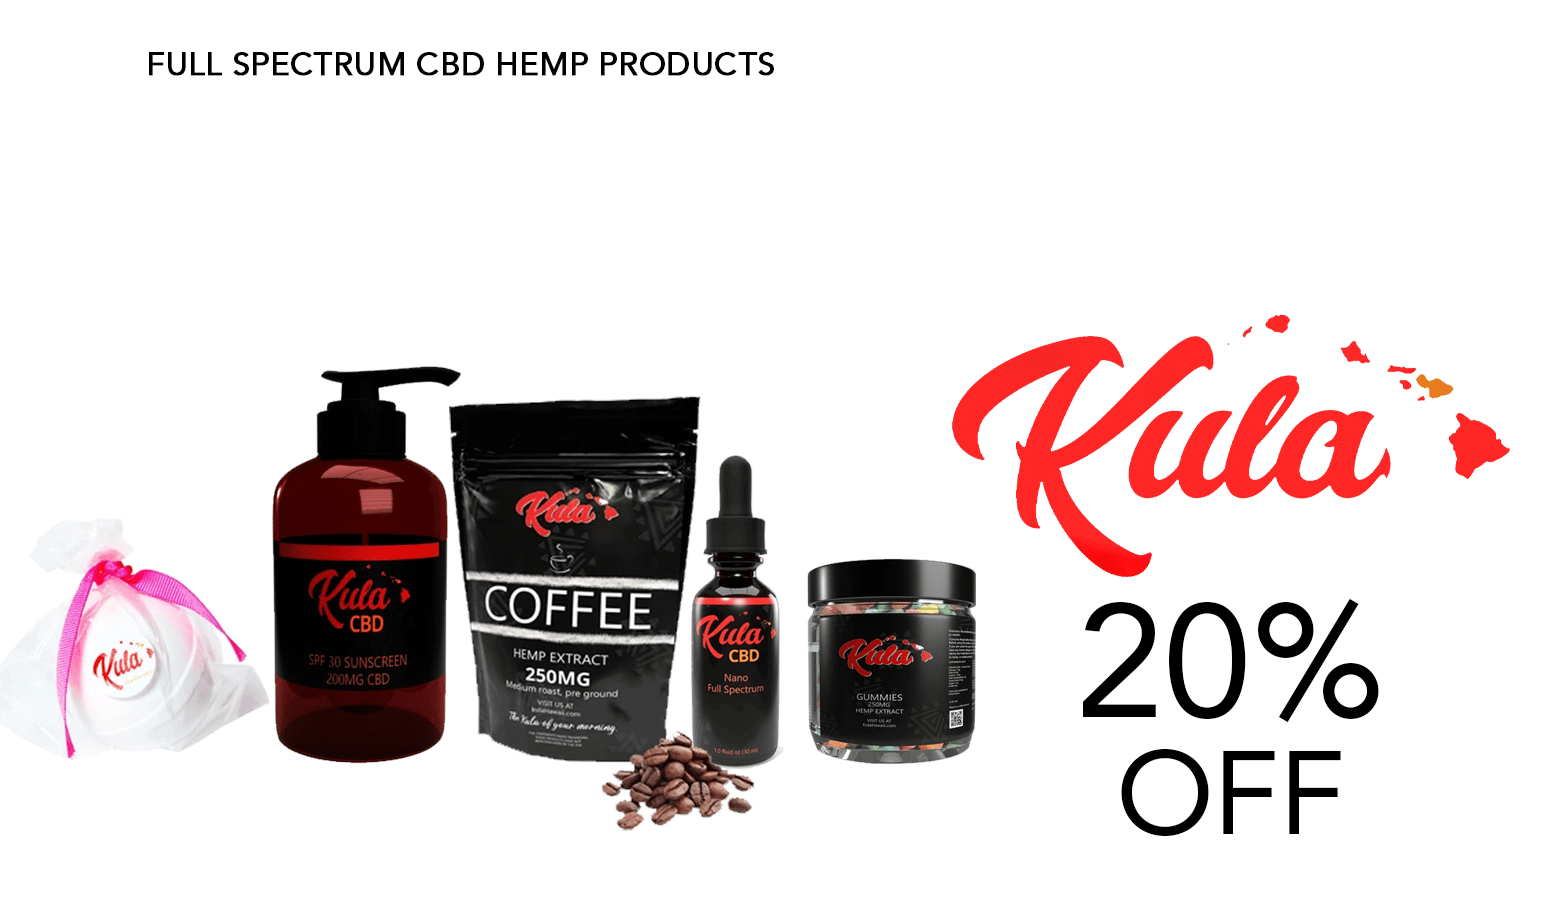 Kula Hawaii CBD Coupon Code Offer Website